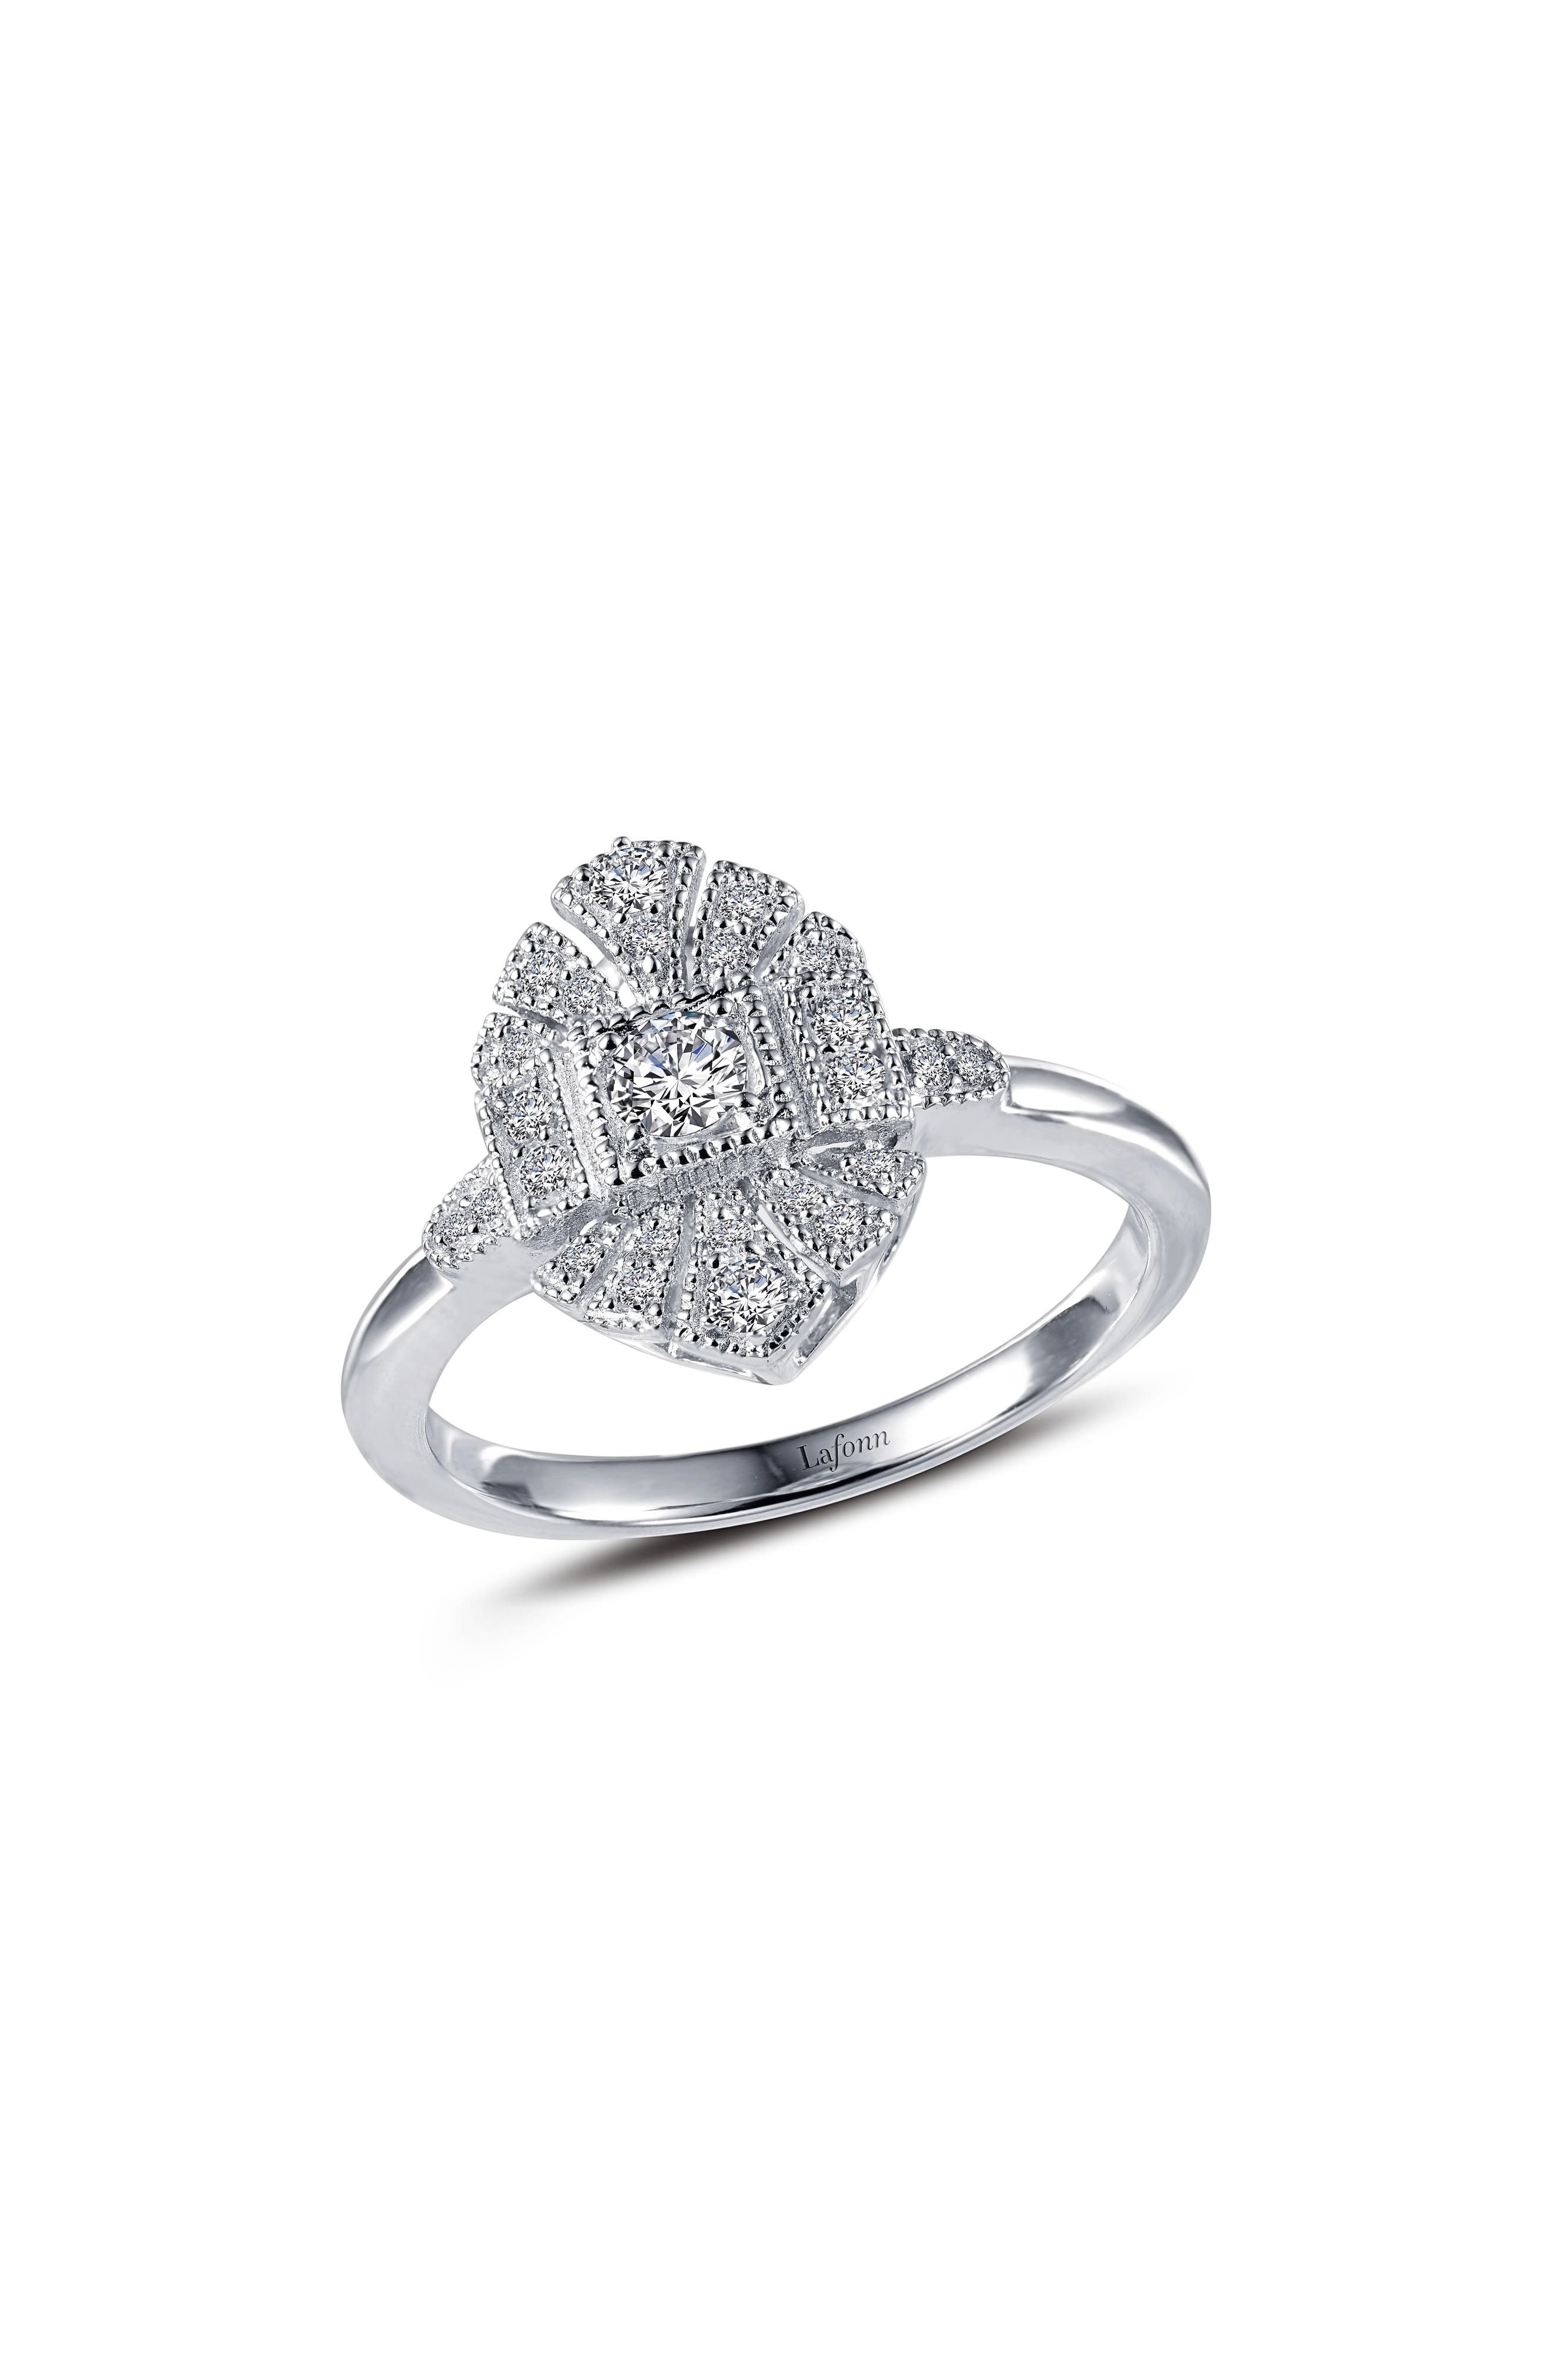 Heritage Simulated Diamond Ring,                         Main,                         color, Silver/ Clear